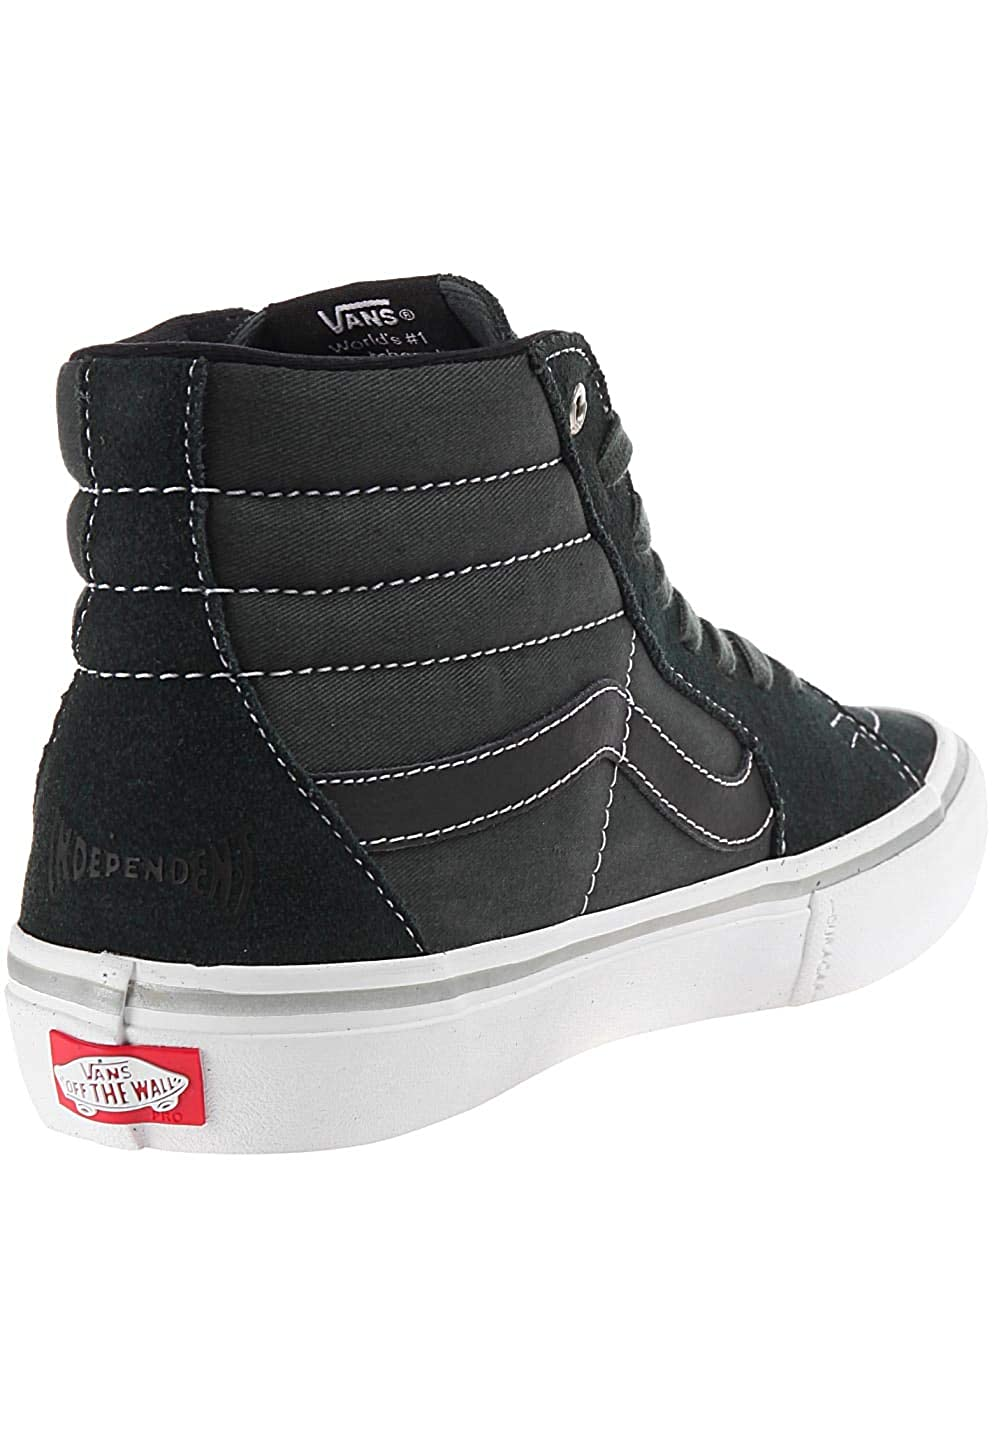 78e635ef3190 Vans X Independent Sk8-hi Pro -Fall 2018- (independent) Spruce   Amazon.co.uk  Shoes   Bags